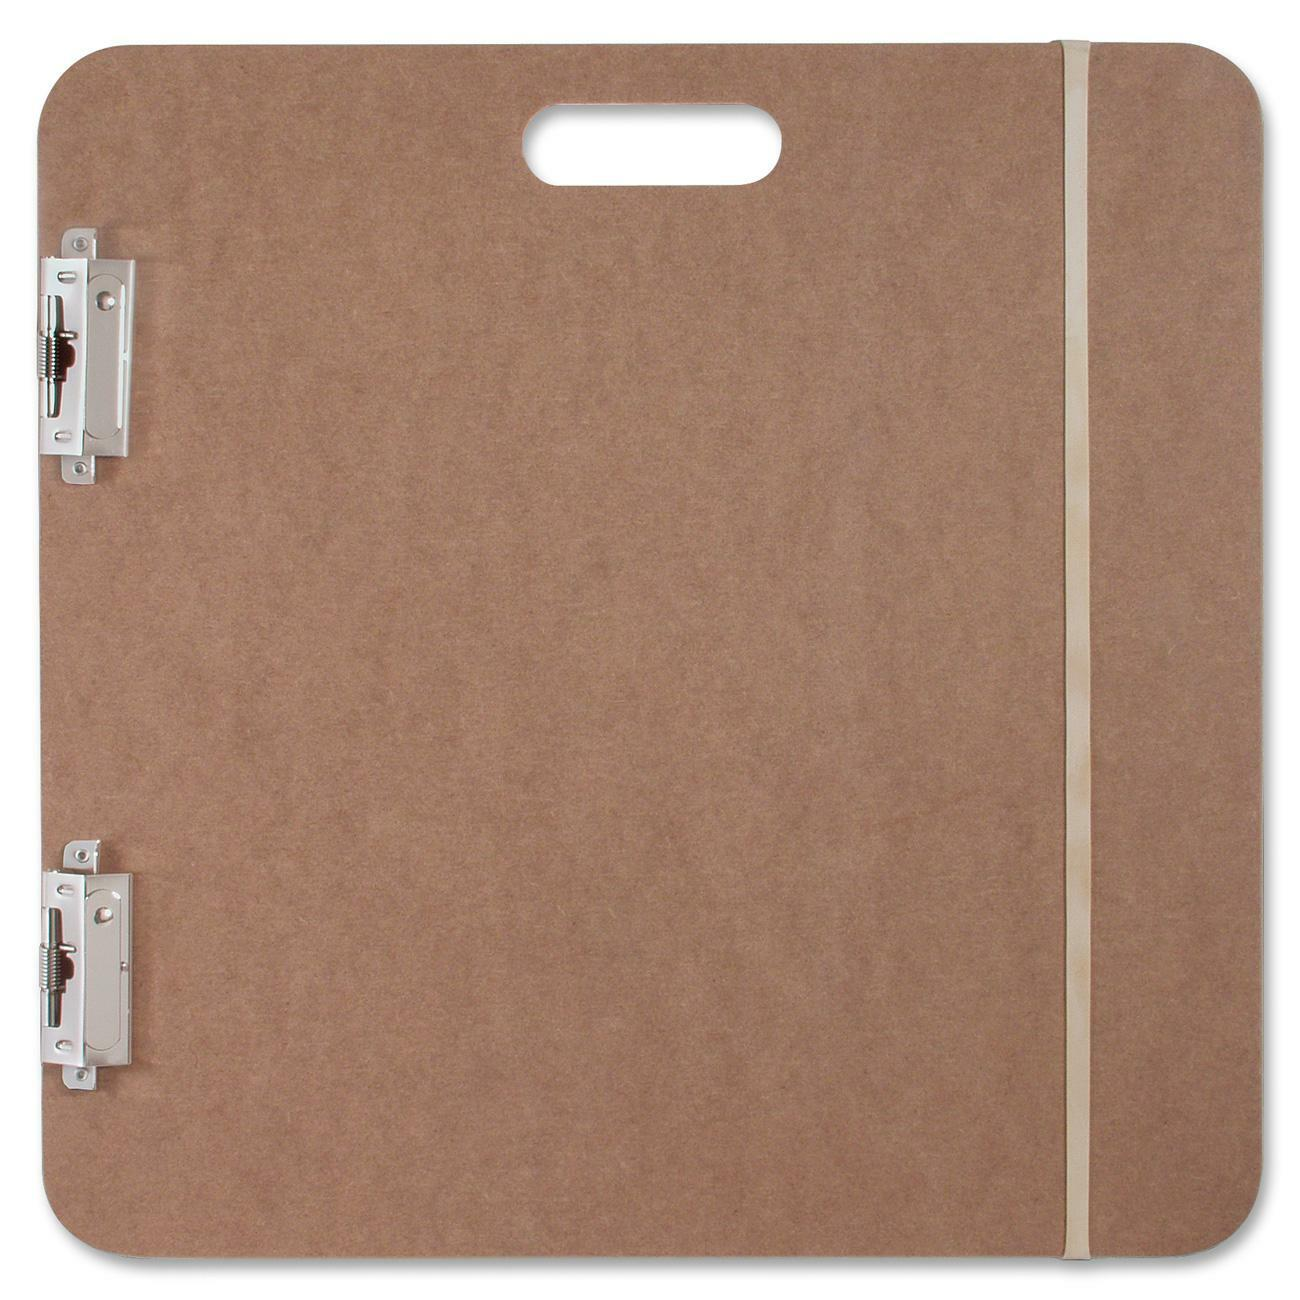 Extra Large Sketchboard Is Larger Than Usual Hardboard Clipboards So It Is  Ideal For Writing Or Drawing On Double Wide Or Larger Documents Or Papers.